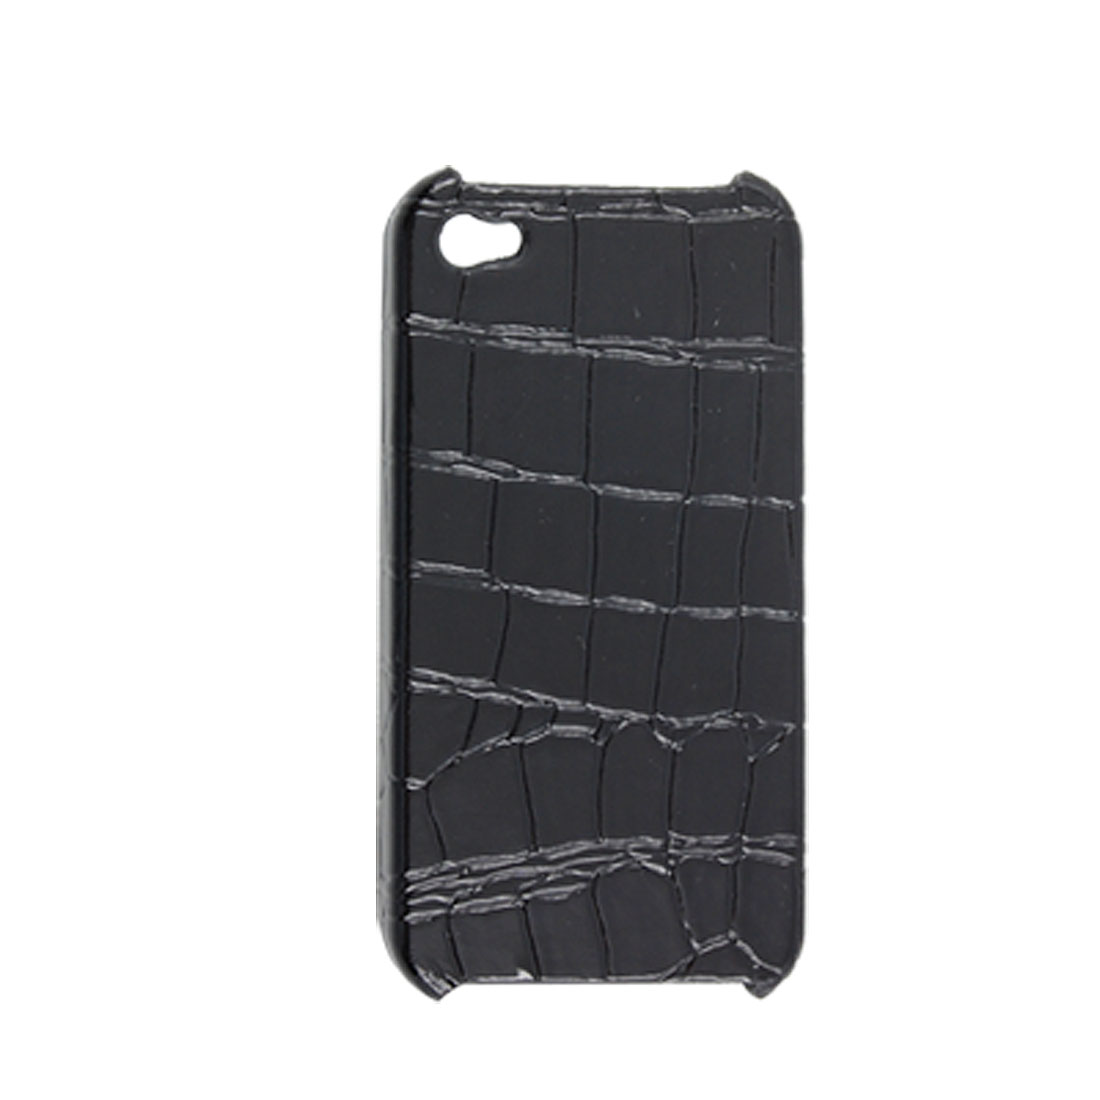 Black Nonslip Hard Plastic Back Snake Print Case Guard